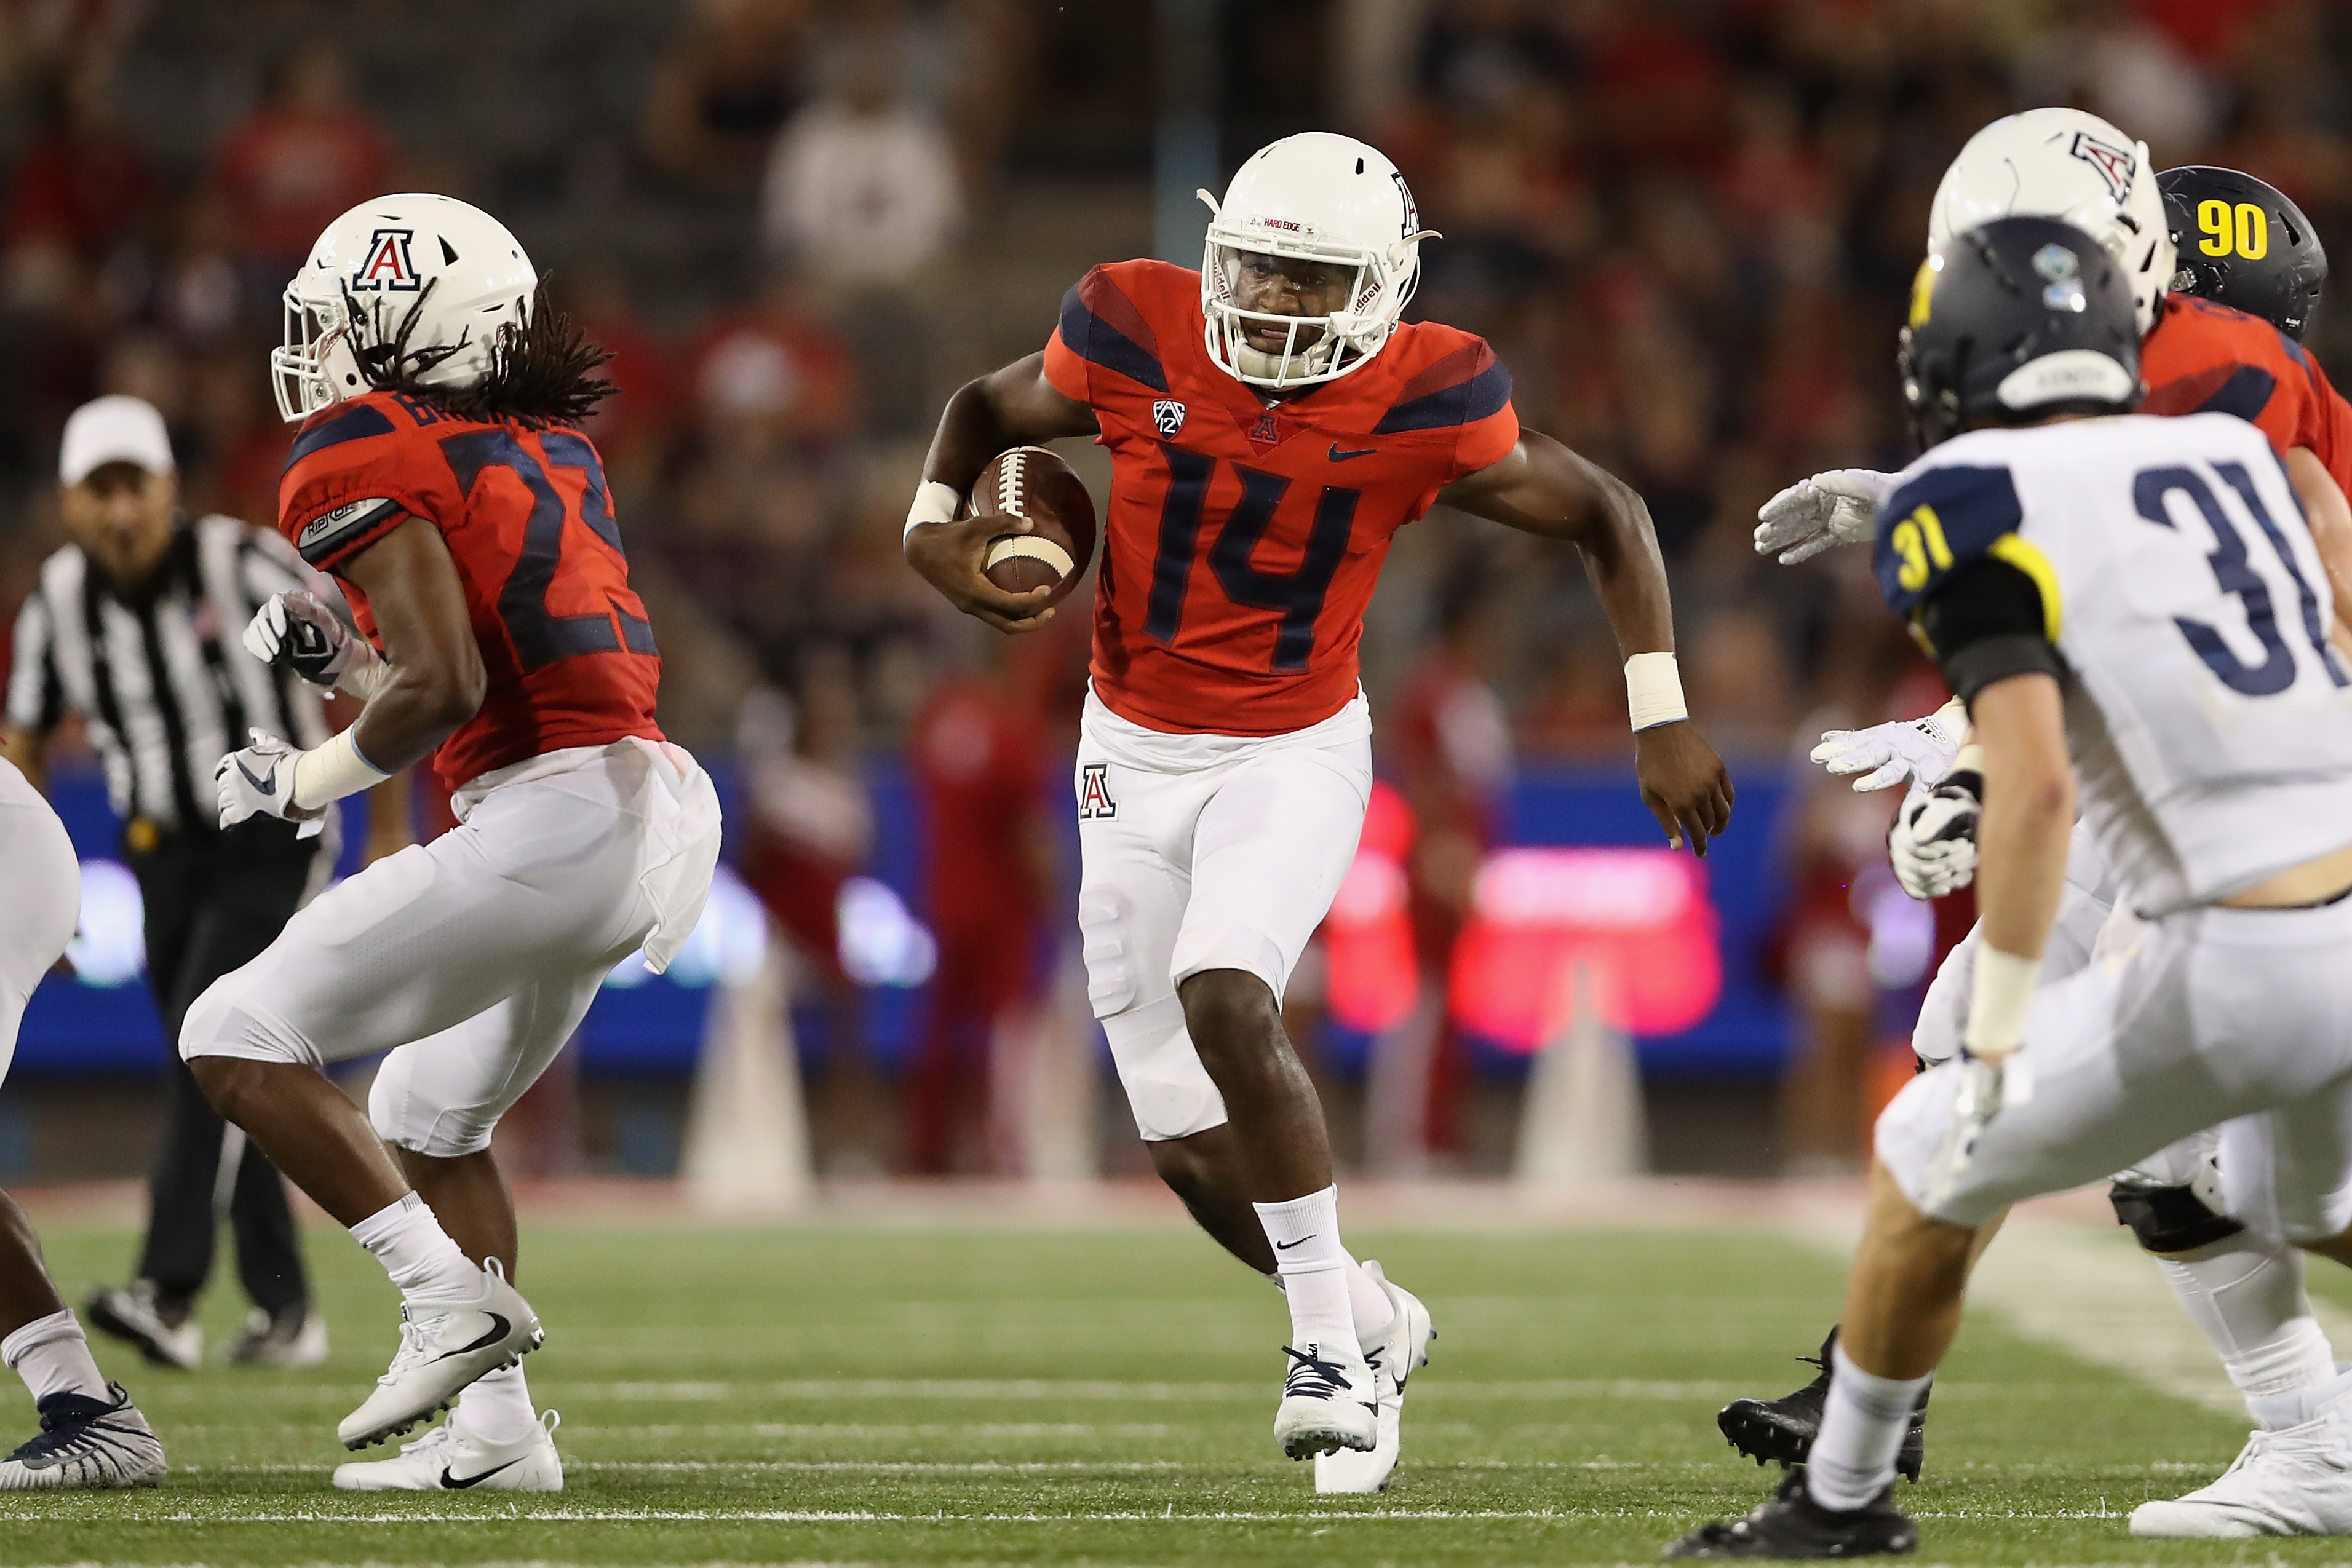 Khalil Tate rips off another massive TD run